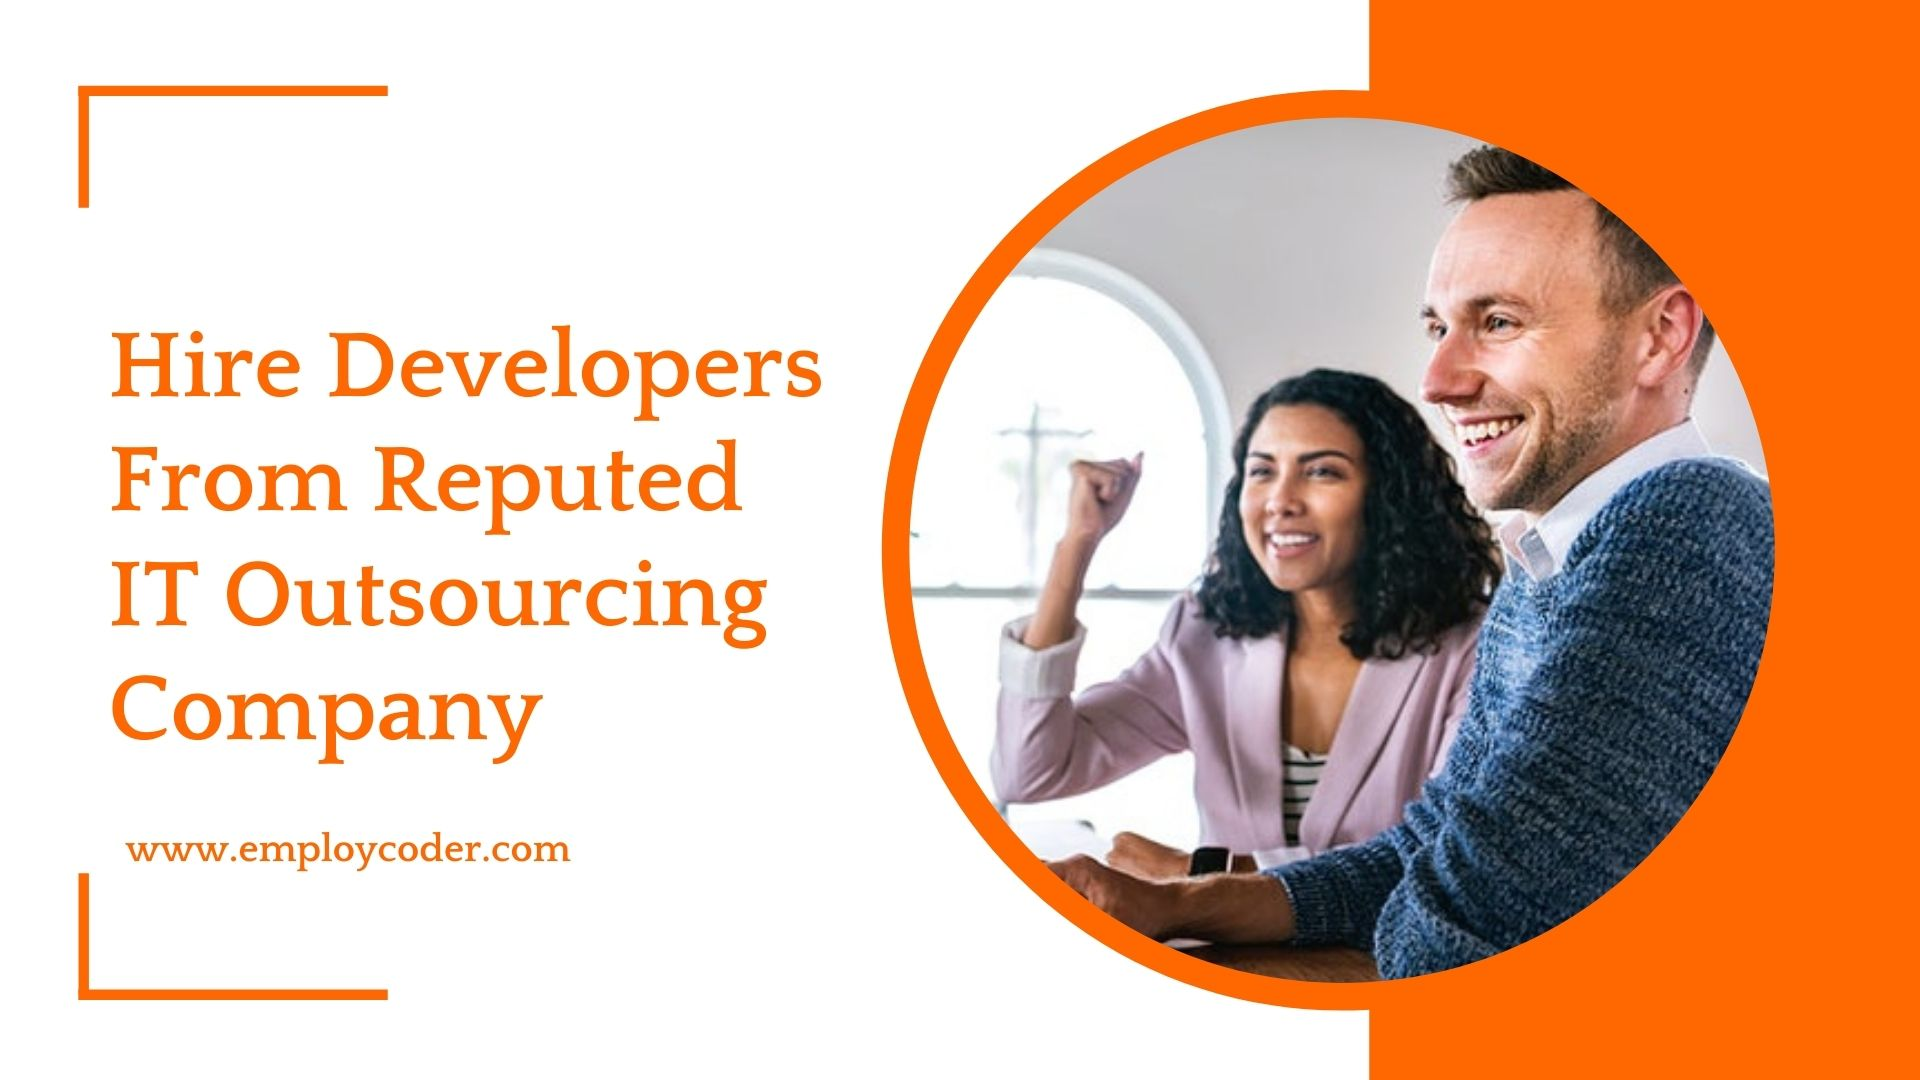 Why Hire Developers From a Reputed IT Outsourcing Company Like Employcoder ?